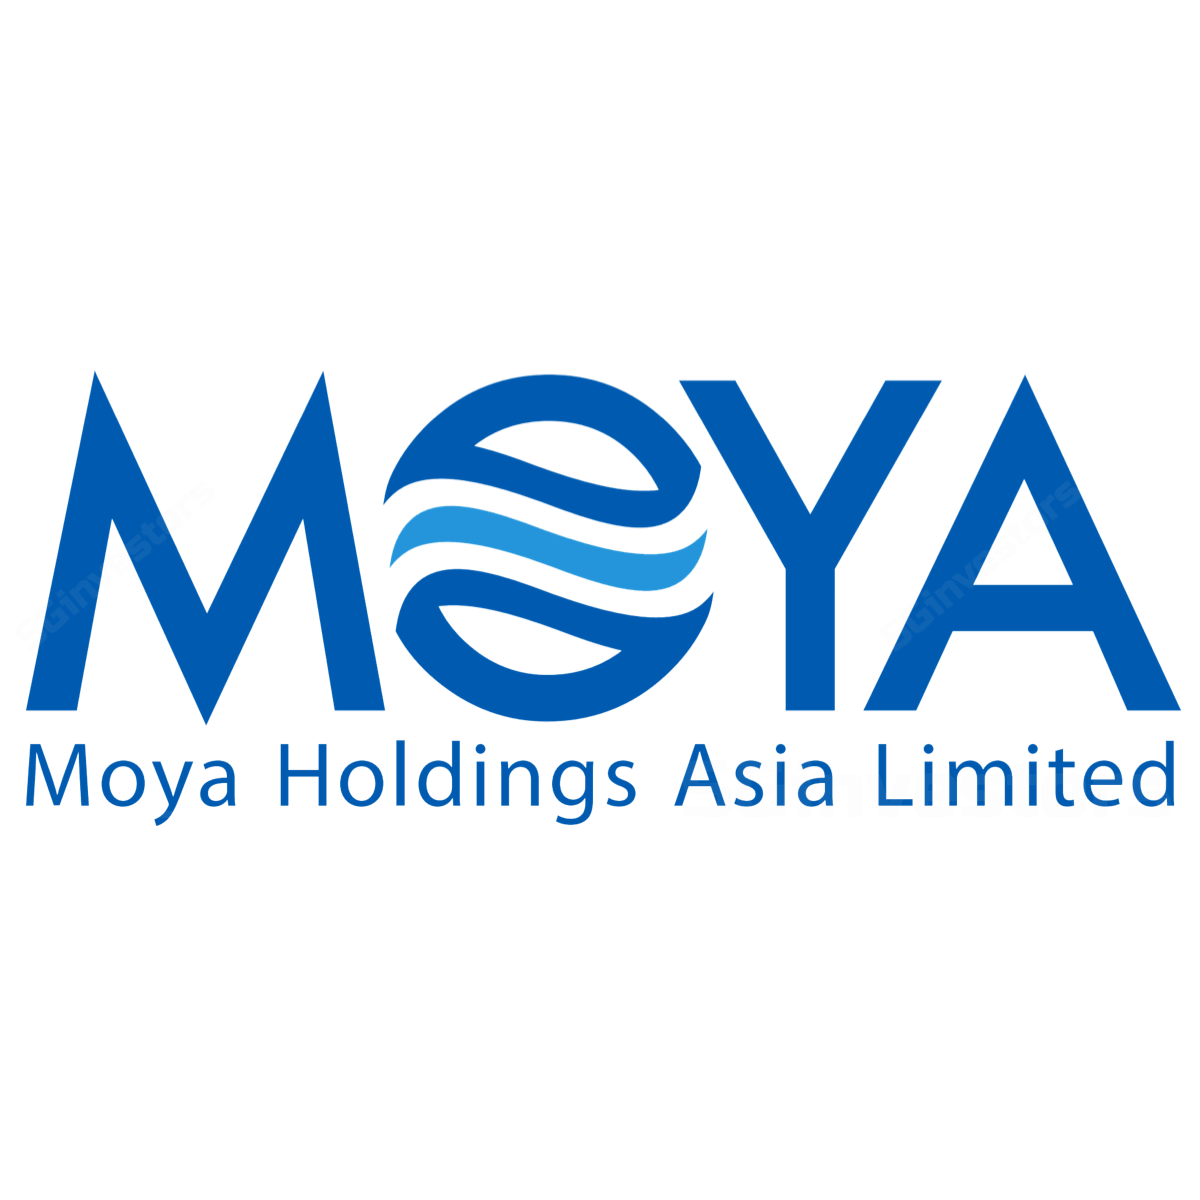 Moya Holdings Asia - RHB Invest 2018-02-09: Major Catalysts Ahead From New Assets